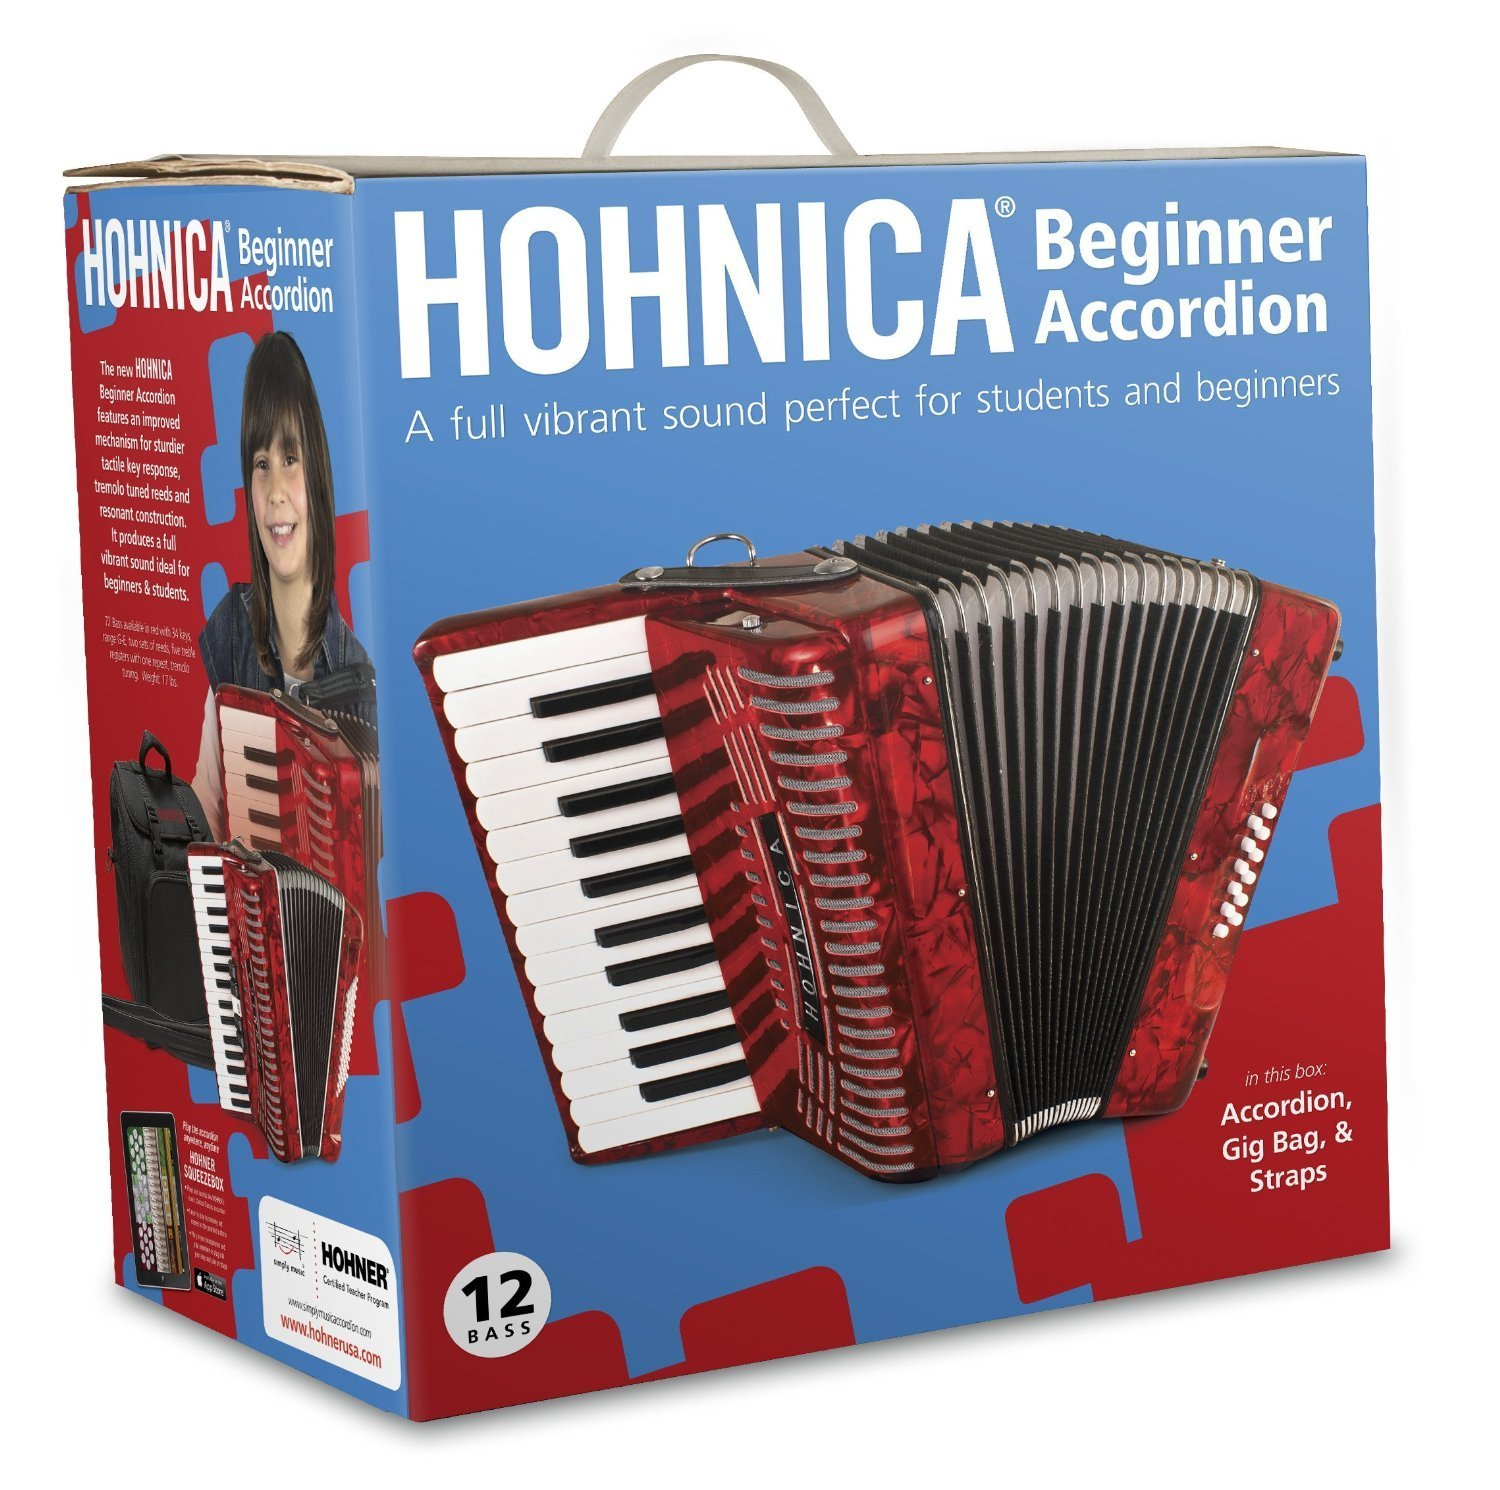 Hohner 1303RED 12 Bass Entry Level Student Accordion by Hohner